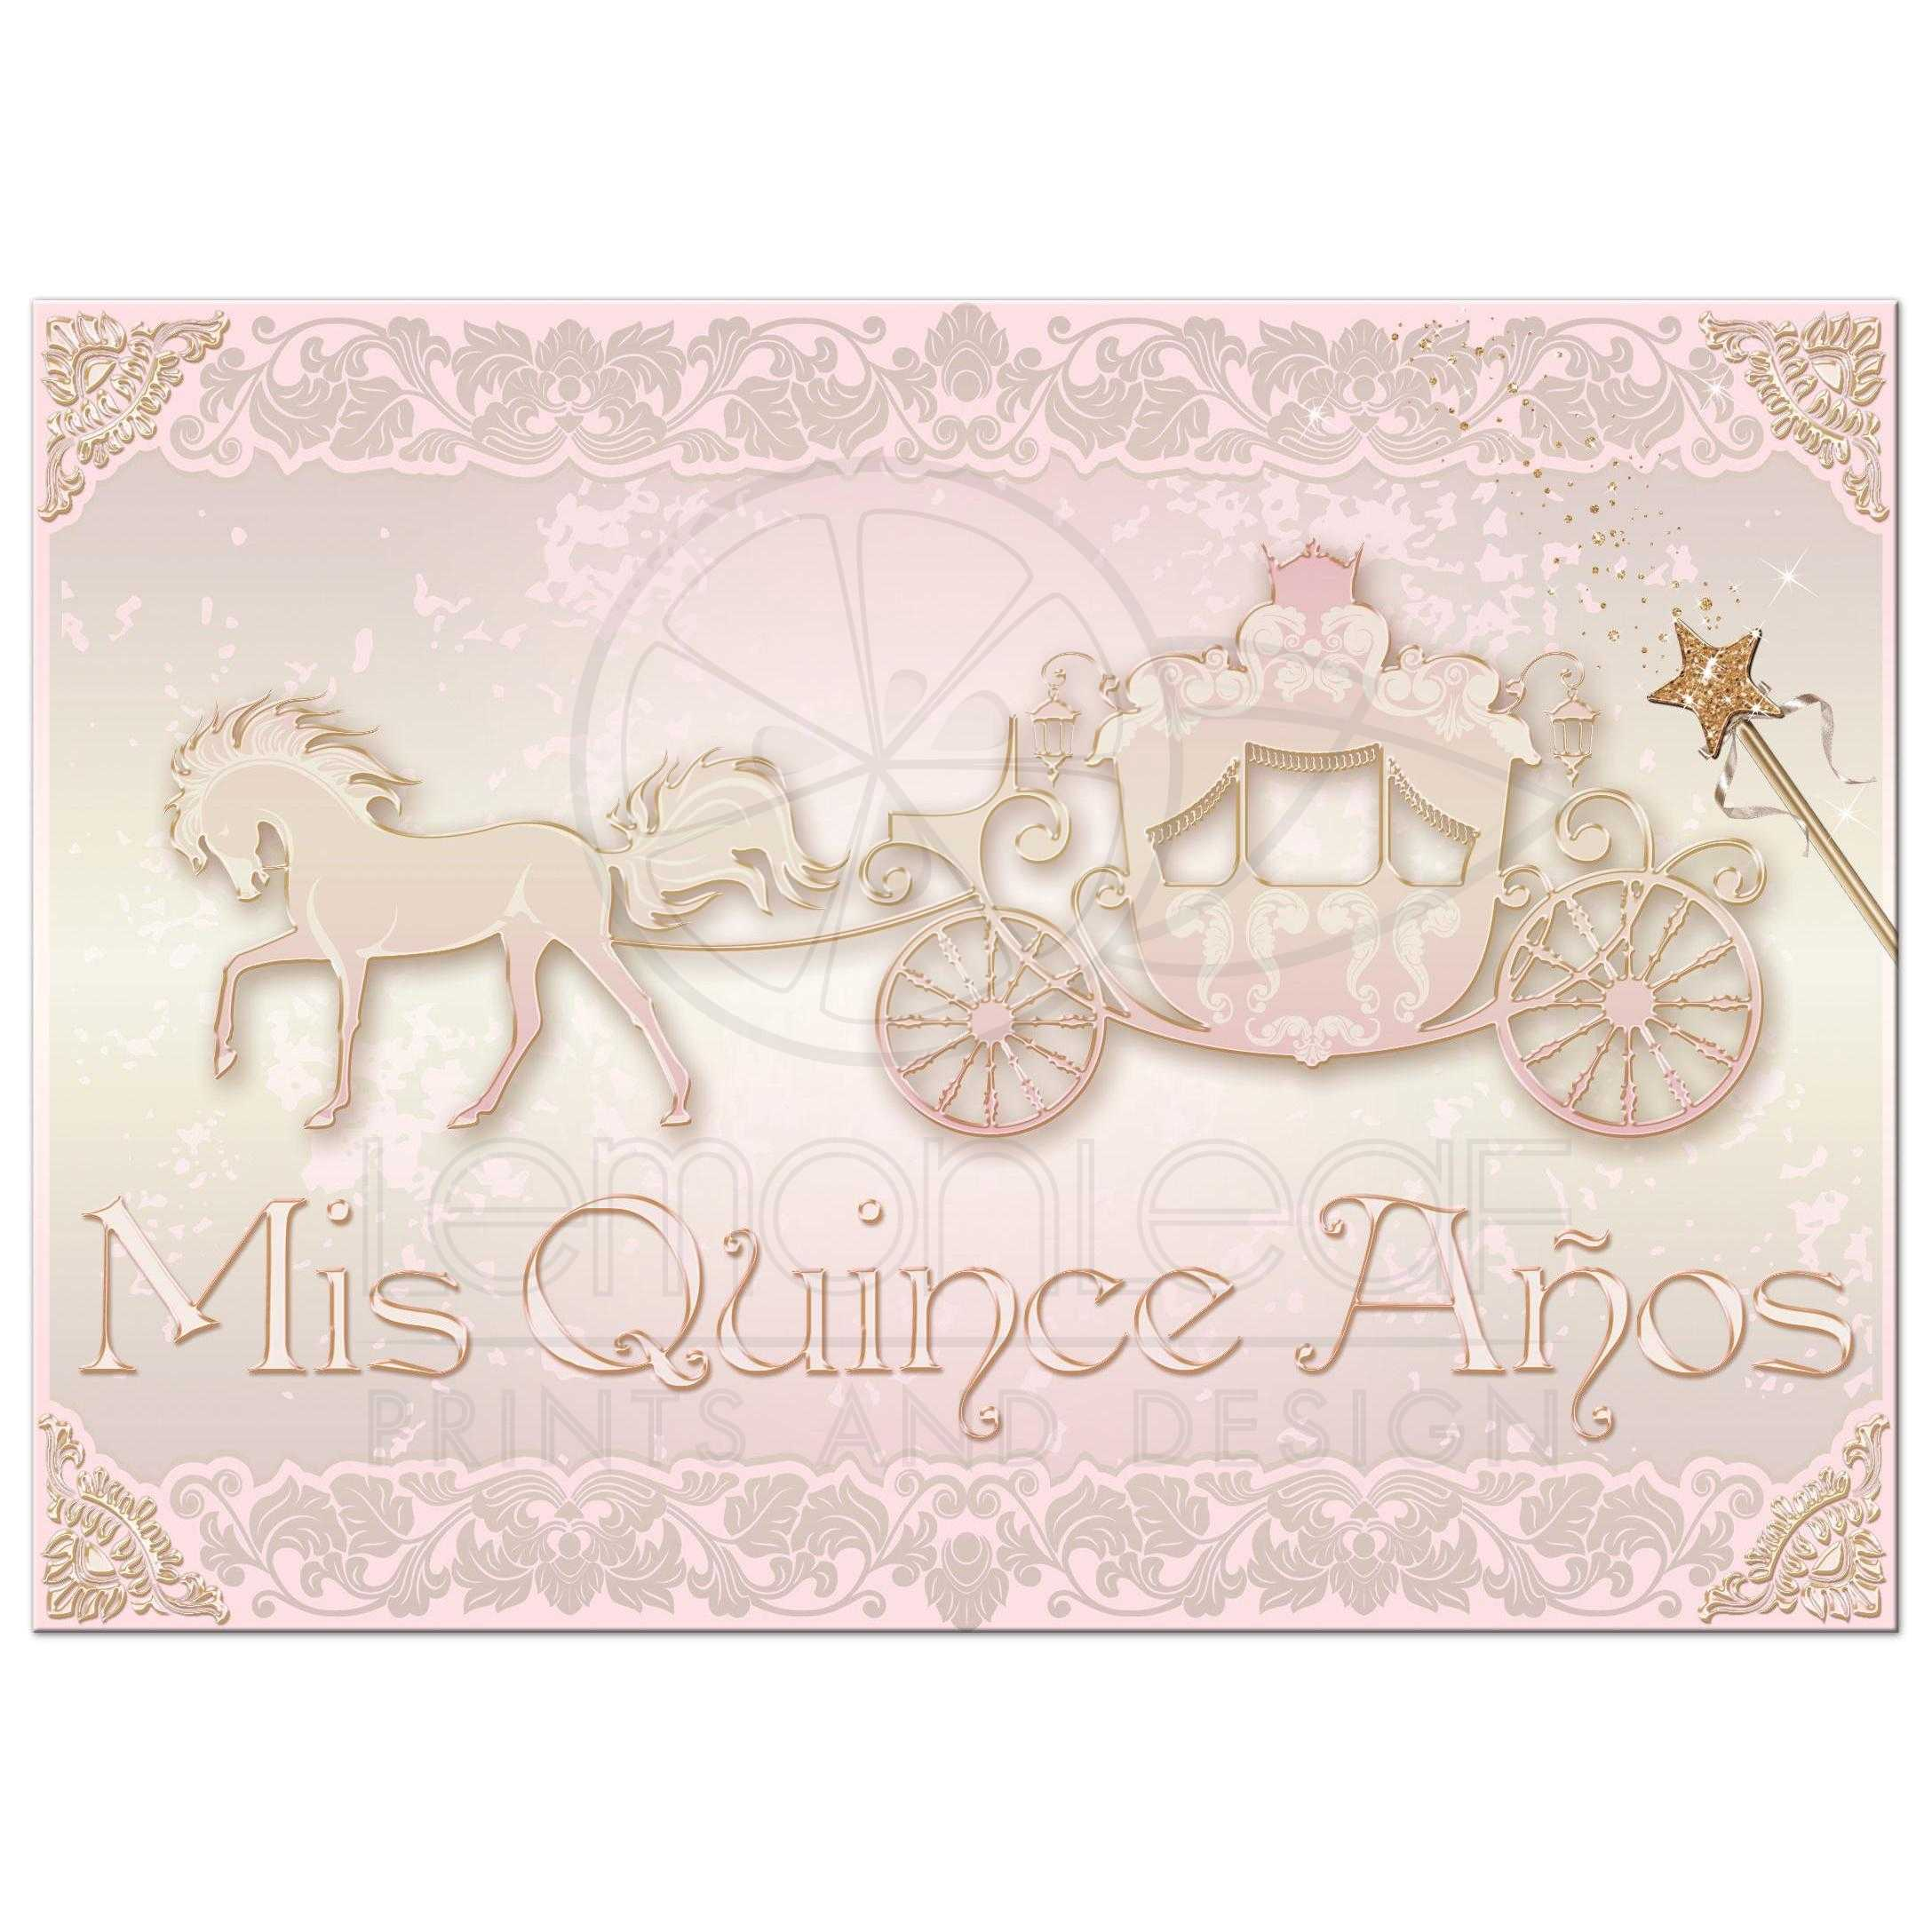 photo quinceañera invite blush pink gold princess carriage with horse